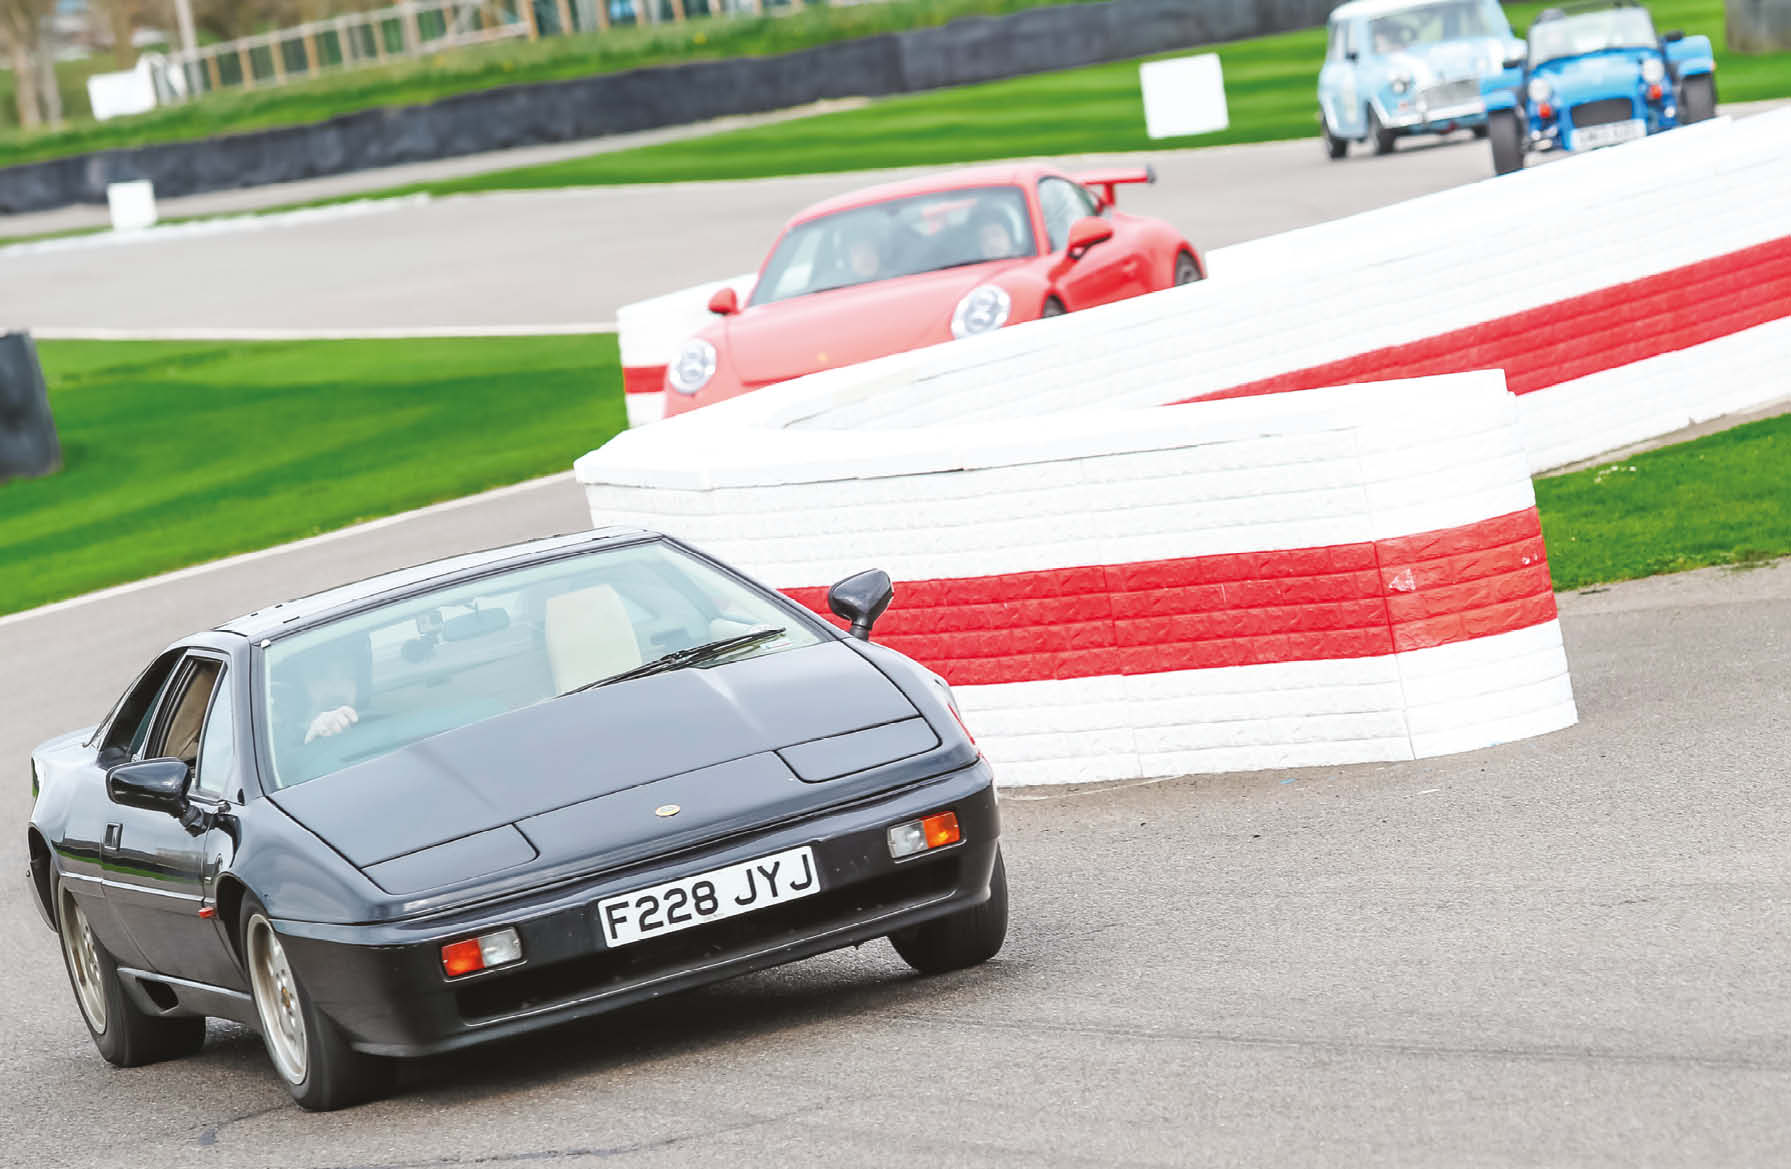 Goodwood venture built on the success of Motor Sport's first track day, at Thruxton in 2018